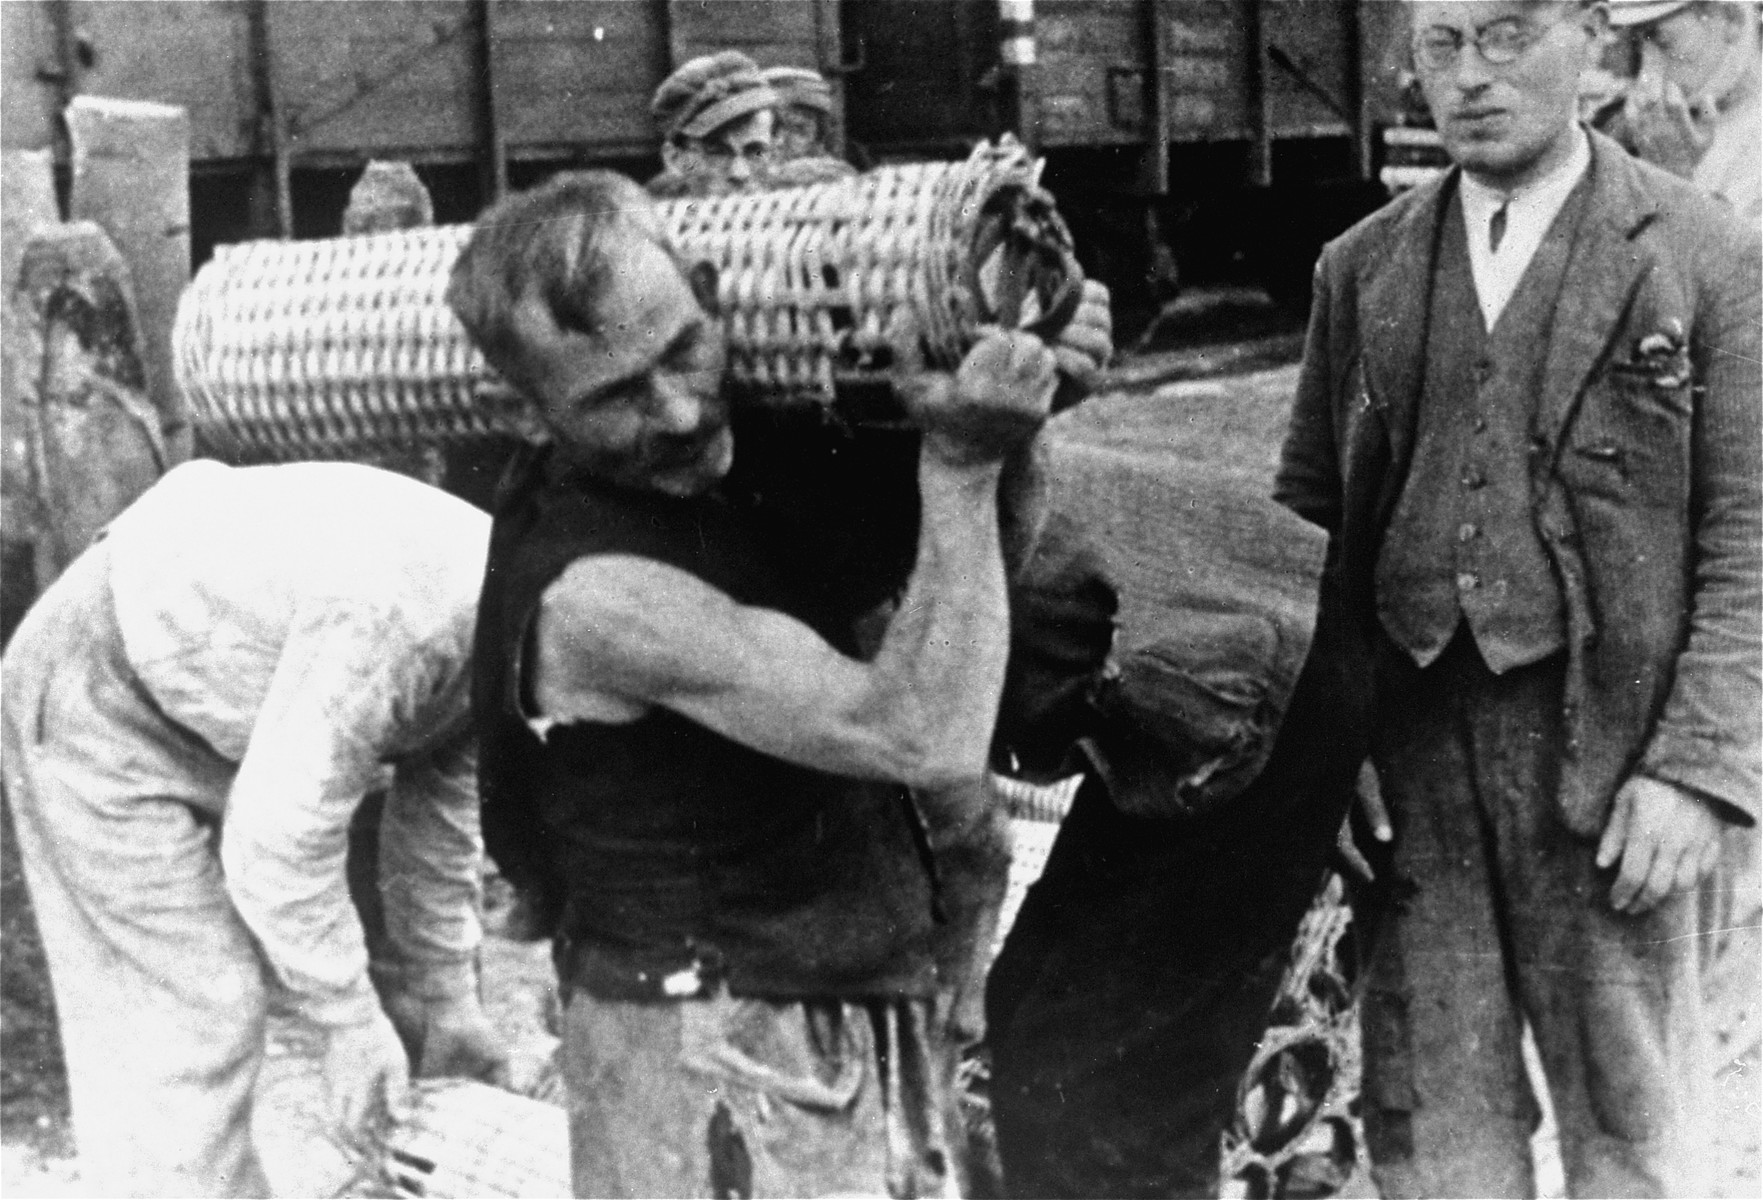 Jewish men are forced to load a German munitions train.